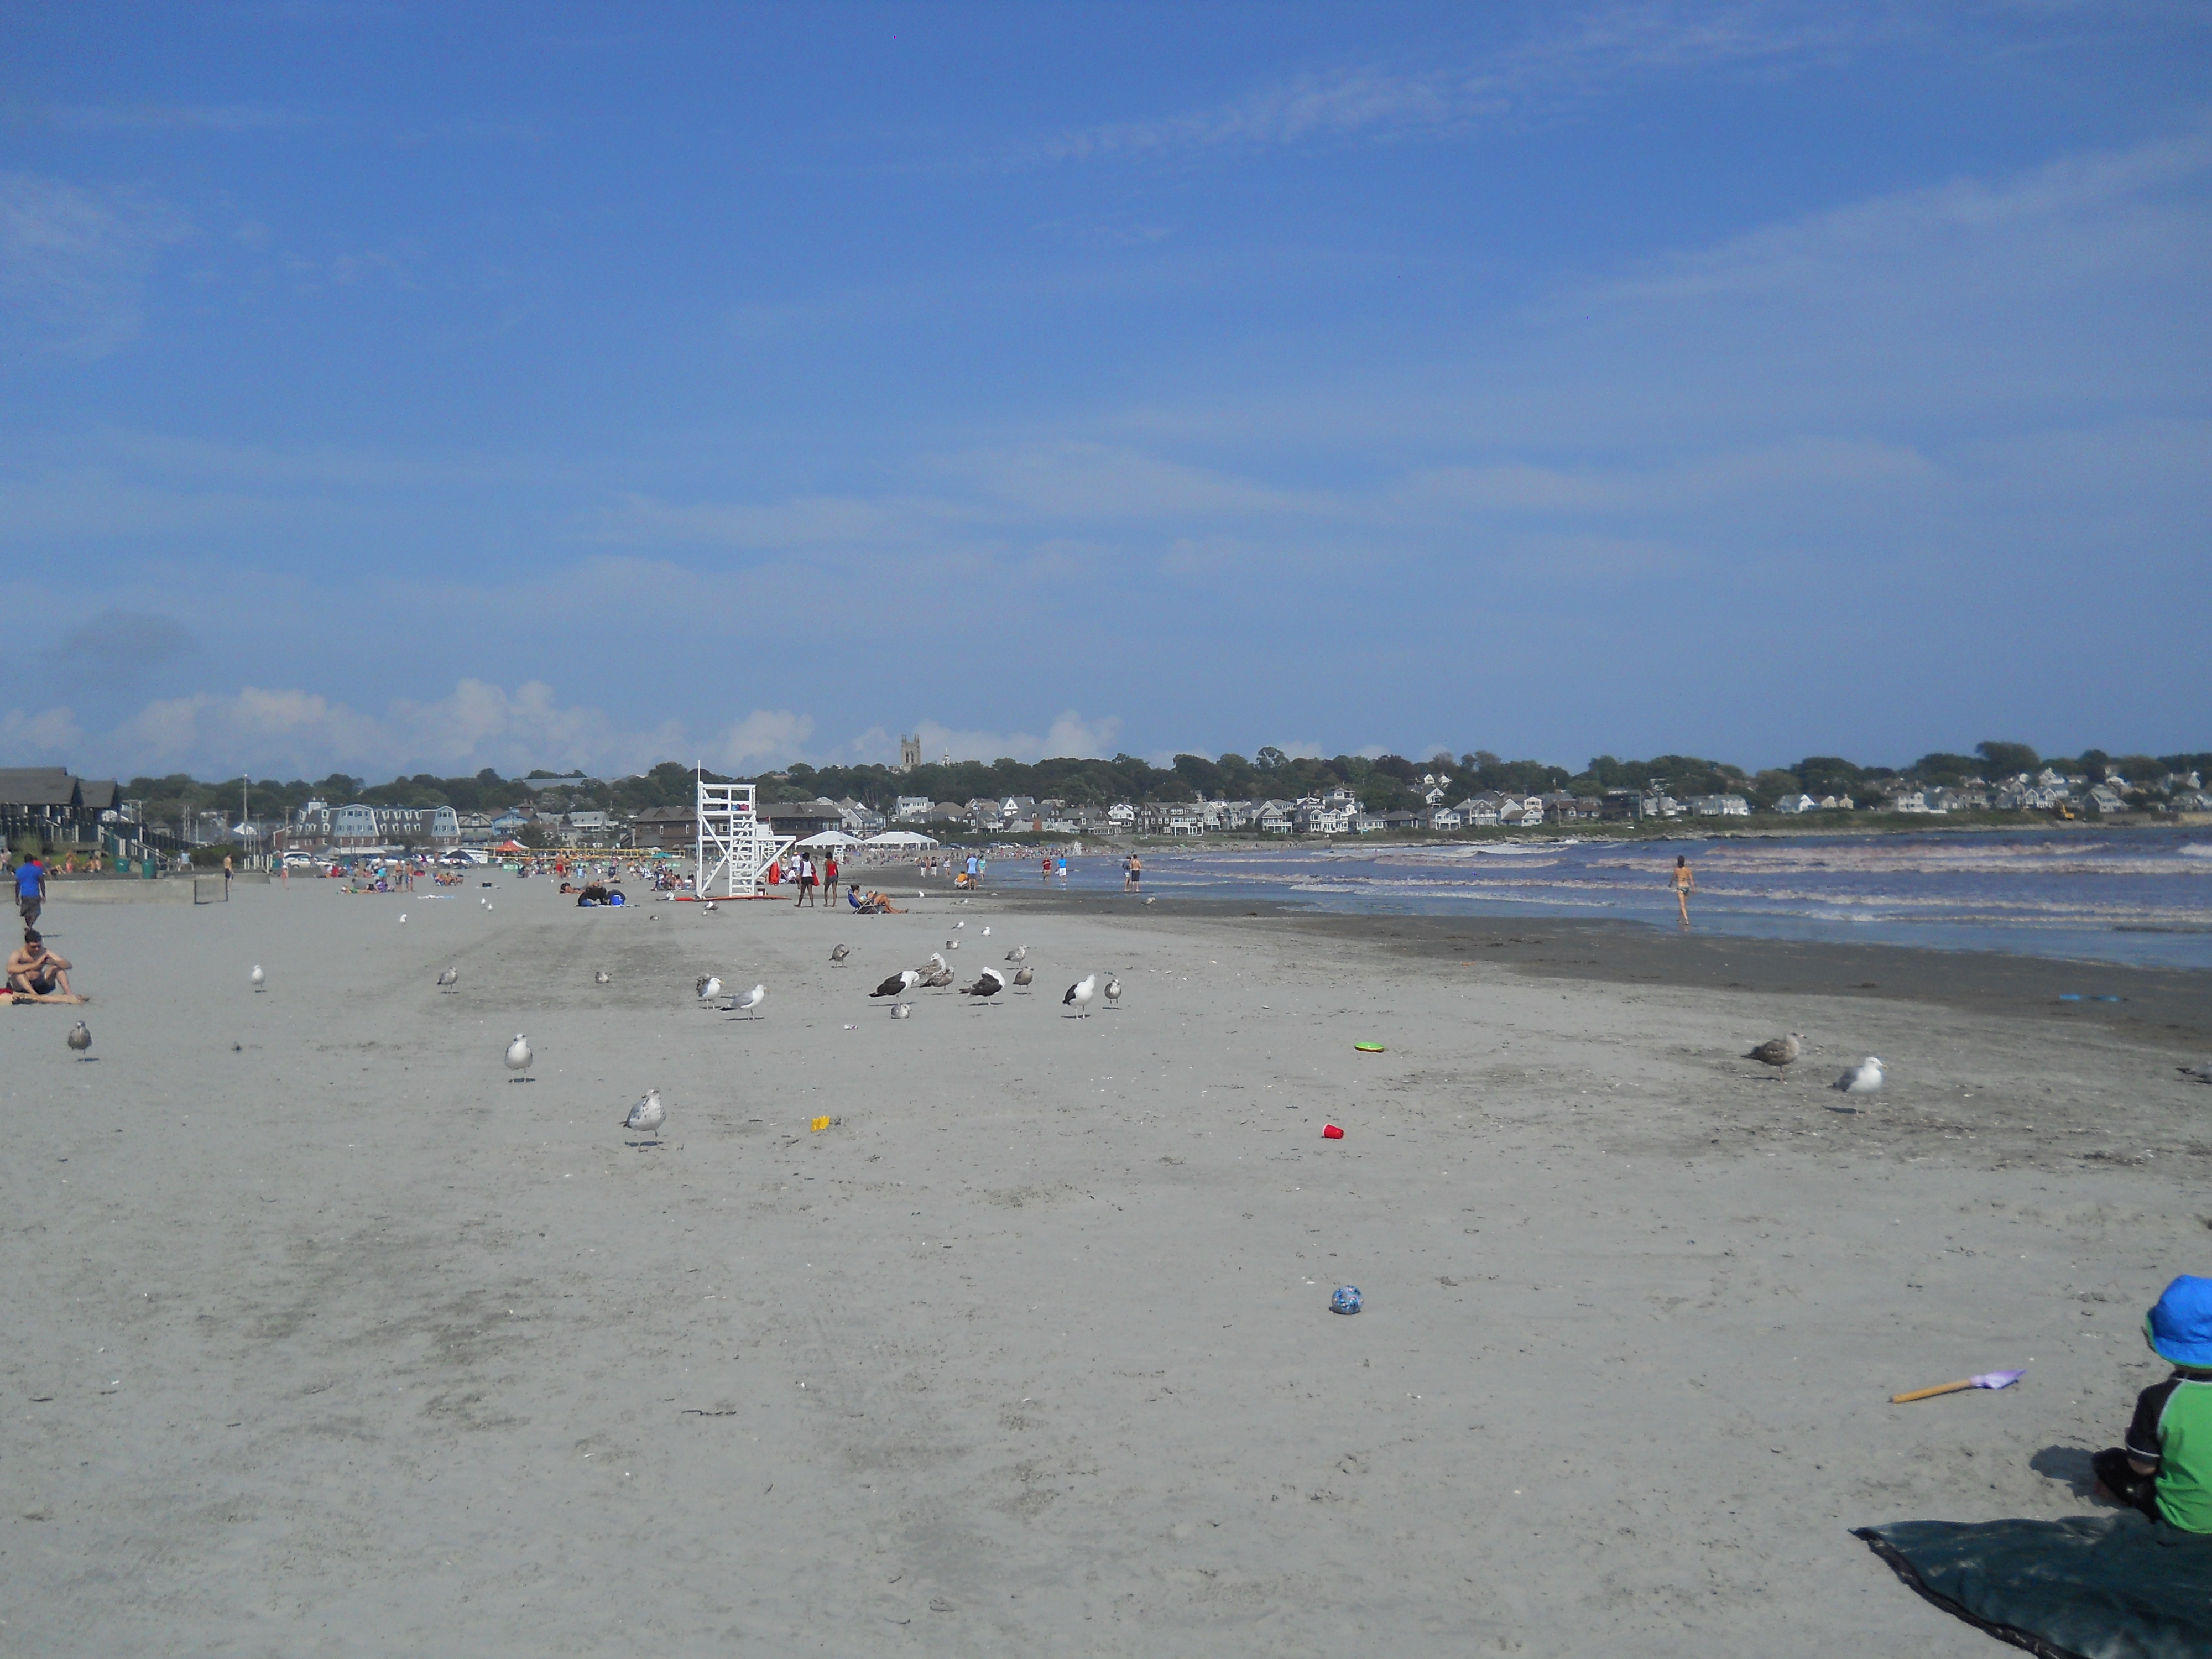 View looking towards Middletown from Easton's Beach.